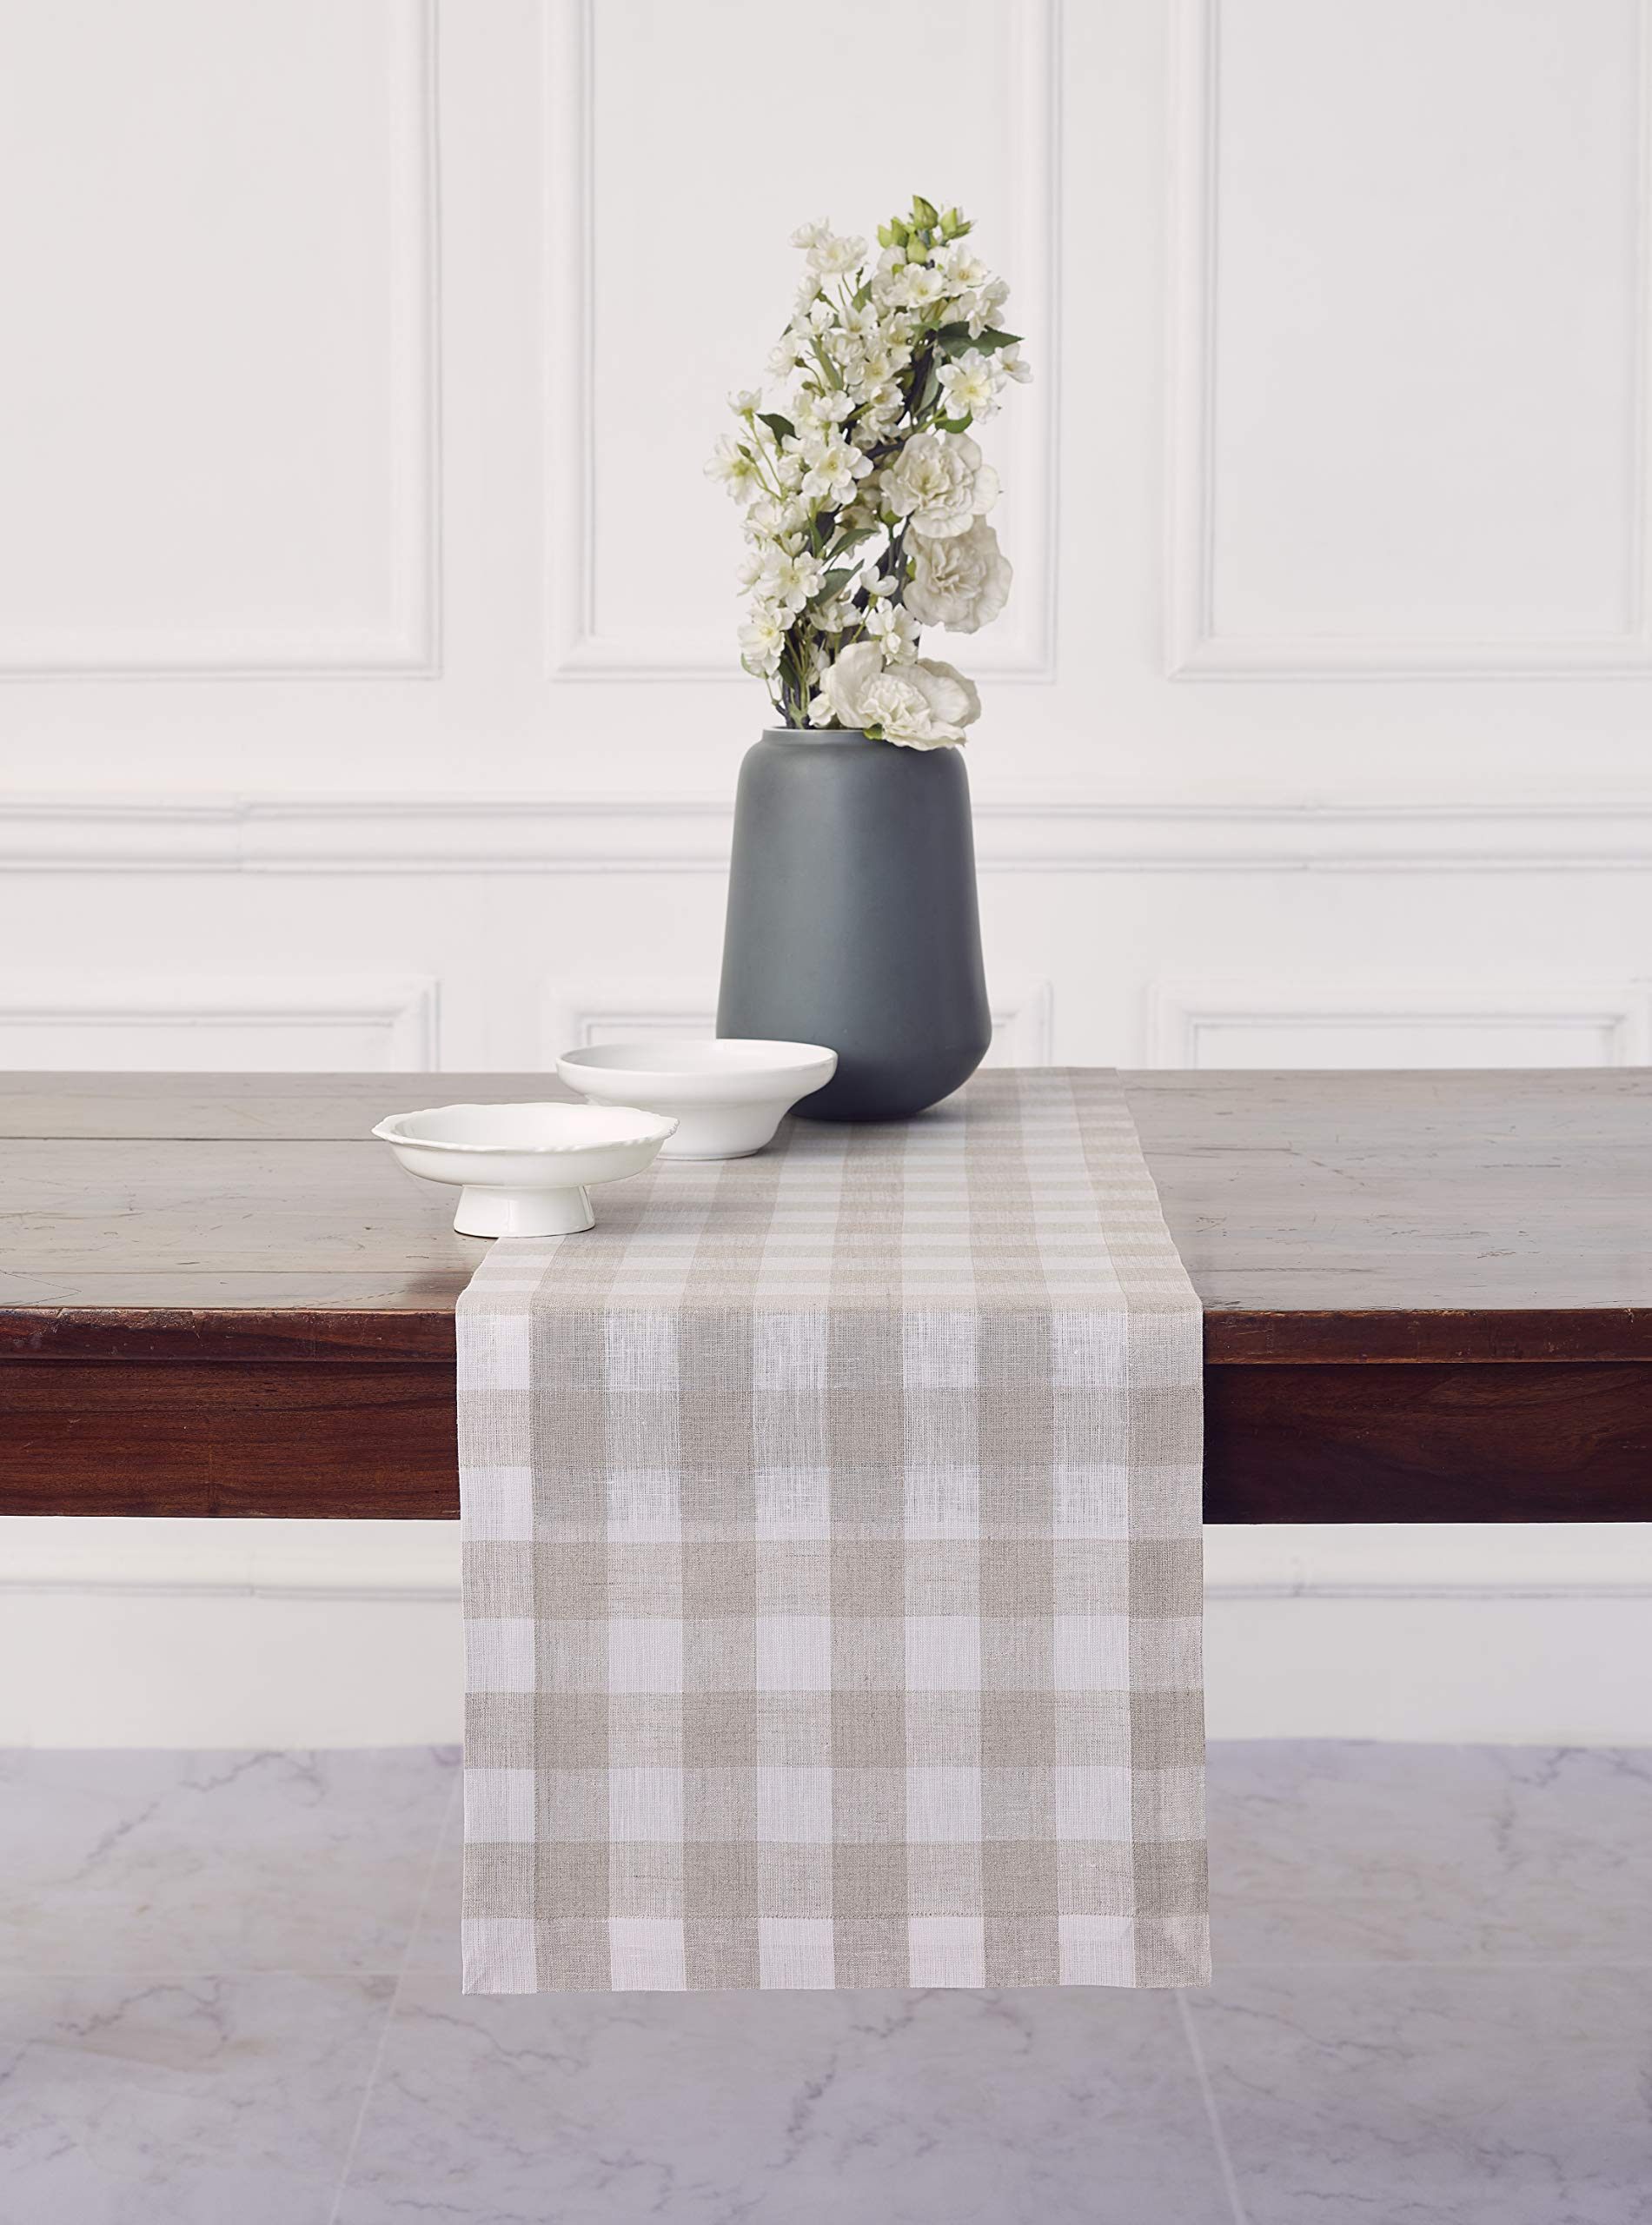 Solino Home 100% Pure Linen Checks Table Runner - Natural & White Check Table Runner - 14 x 72 Inch Runner for Dinner, Indoor and Outdoor Use by Solino Home (Image #4)